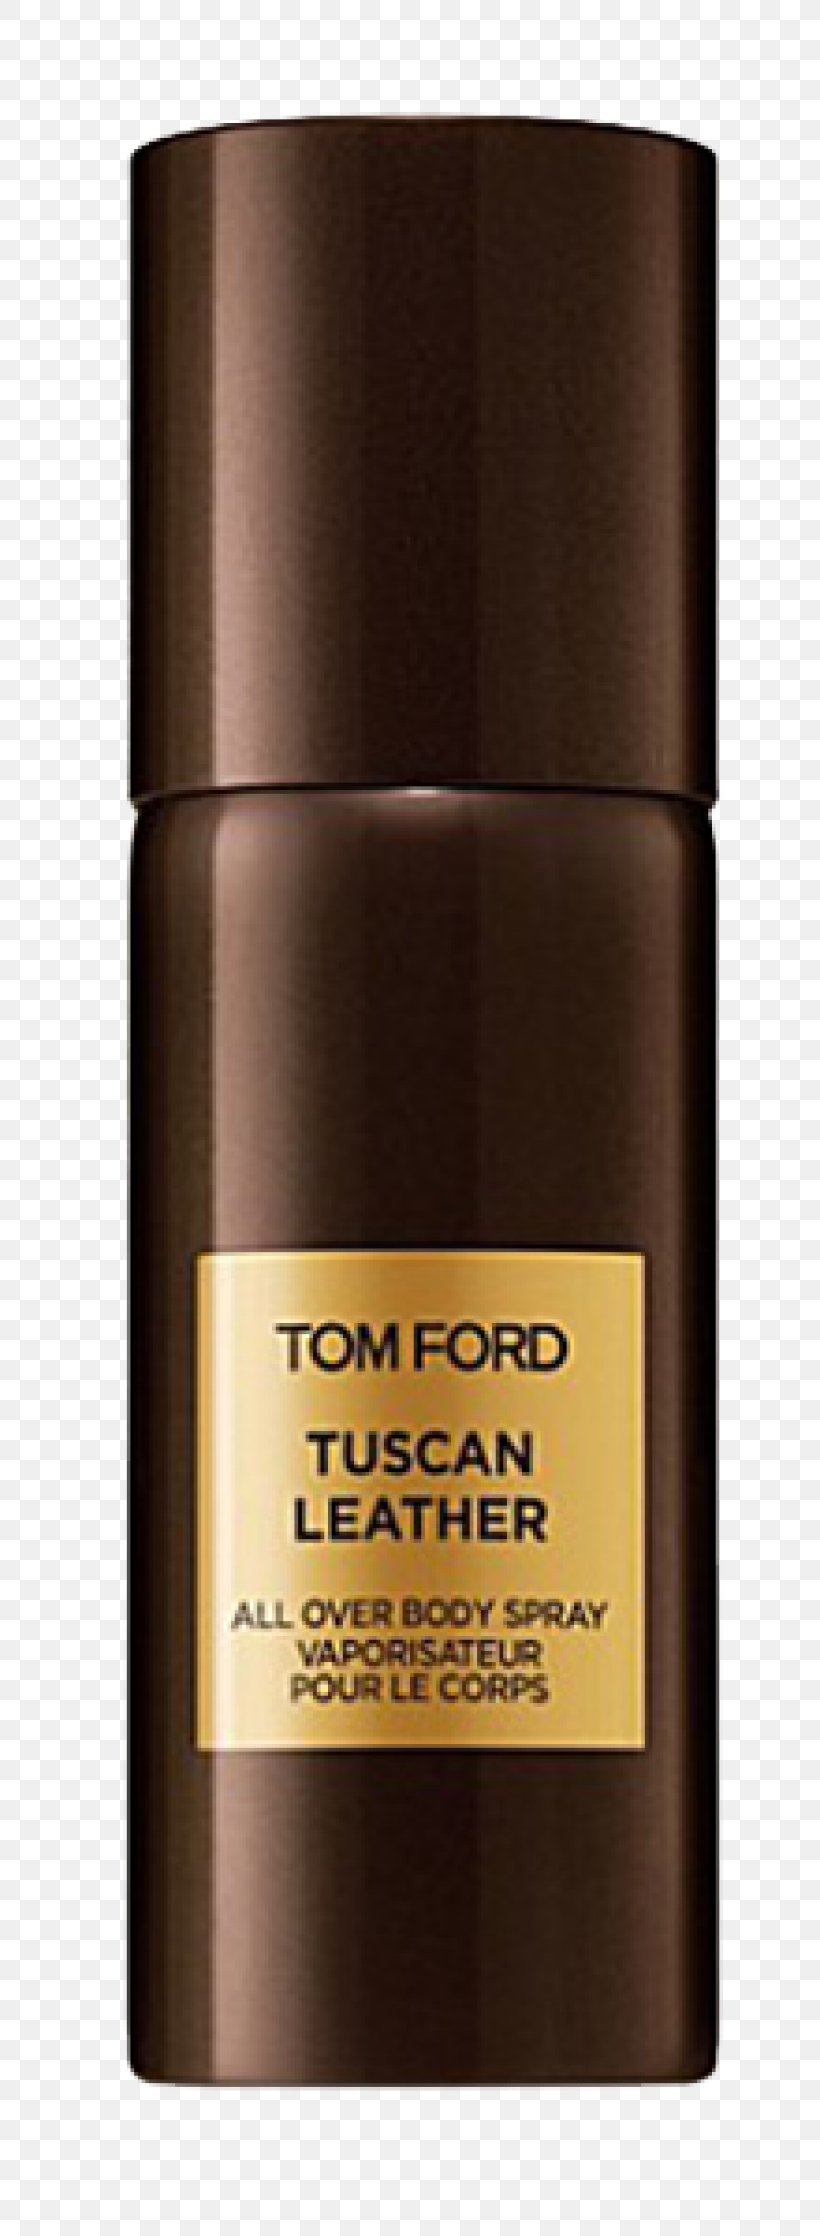 Body Spray Perfume Tuscan Leather Coco Mademoiselle Cosmetics, PNG, 768x2236px, Body Spray, Beauty, Coco Mademoiselle, Cosmetics, Deborah Lippmann Download Free